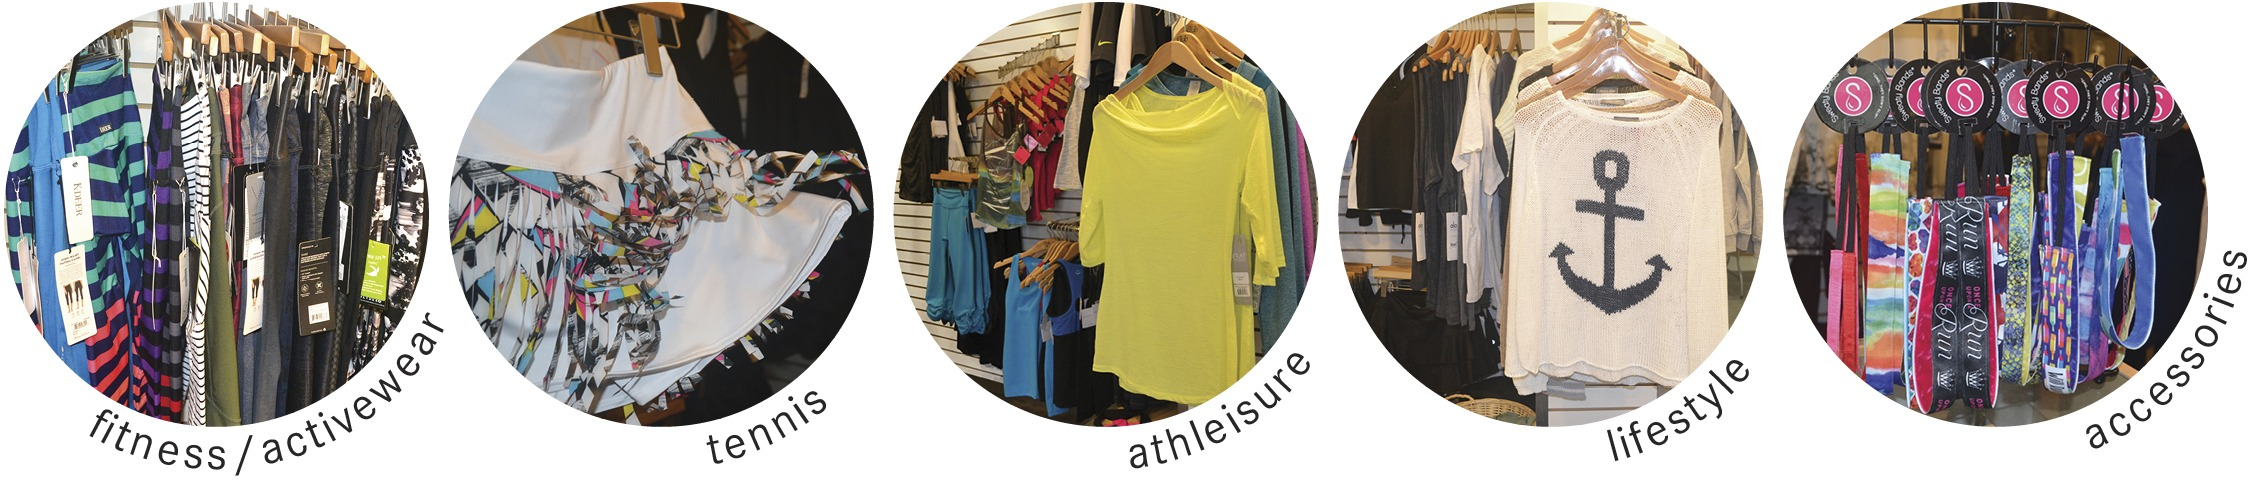 Athleisure Fitness Tennis Yoga Activewear Accessories